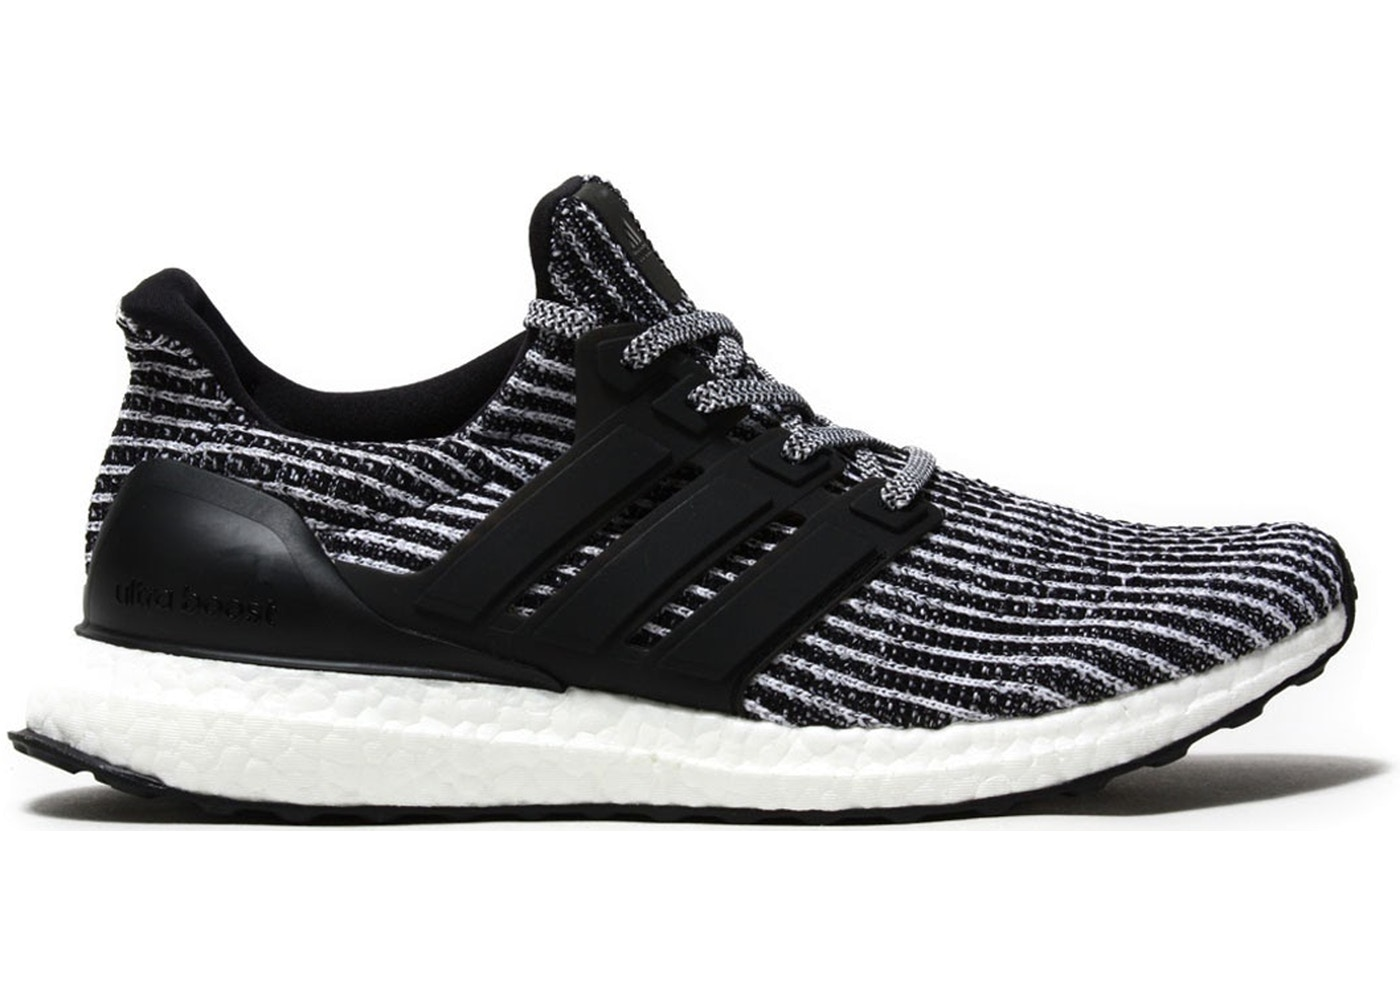 0b554210a086e adidas Ultra Boost 4.0 Cookies   Cream 2.0 - BB6179